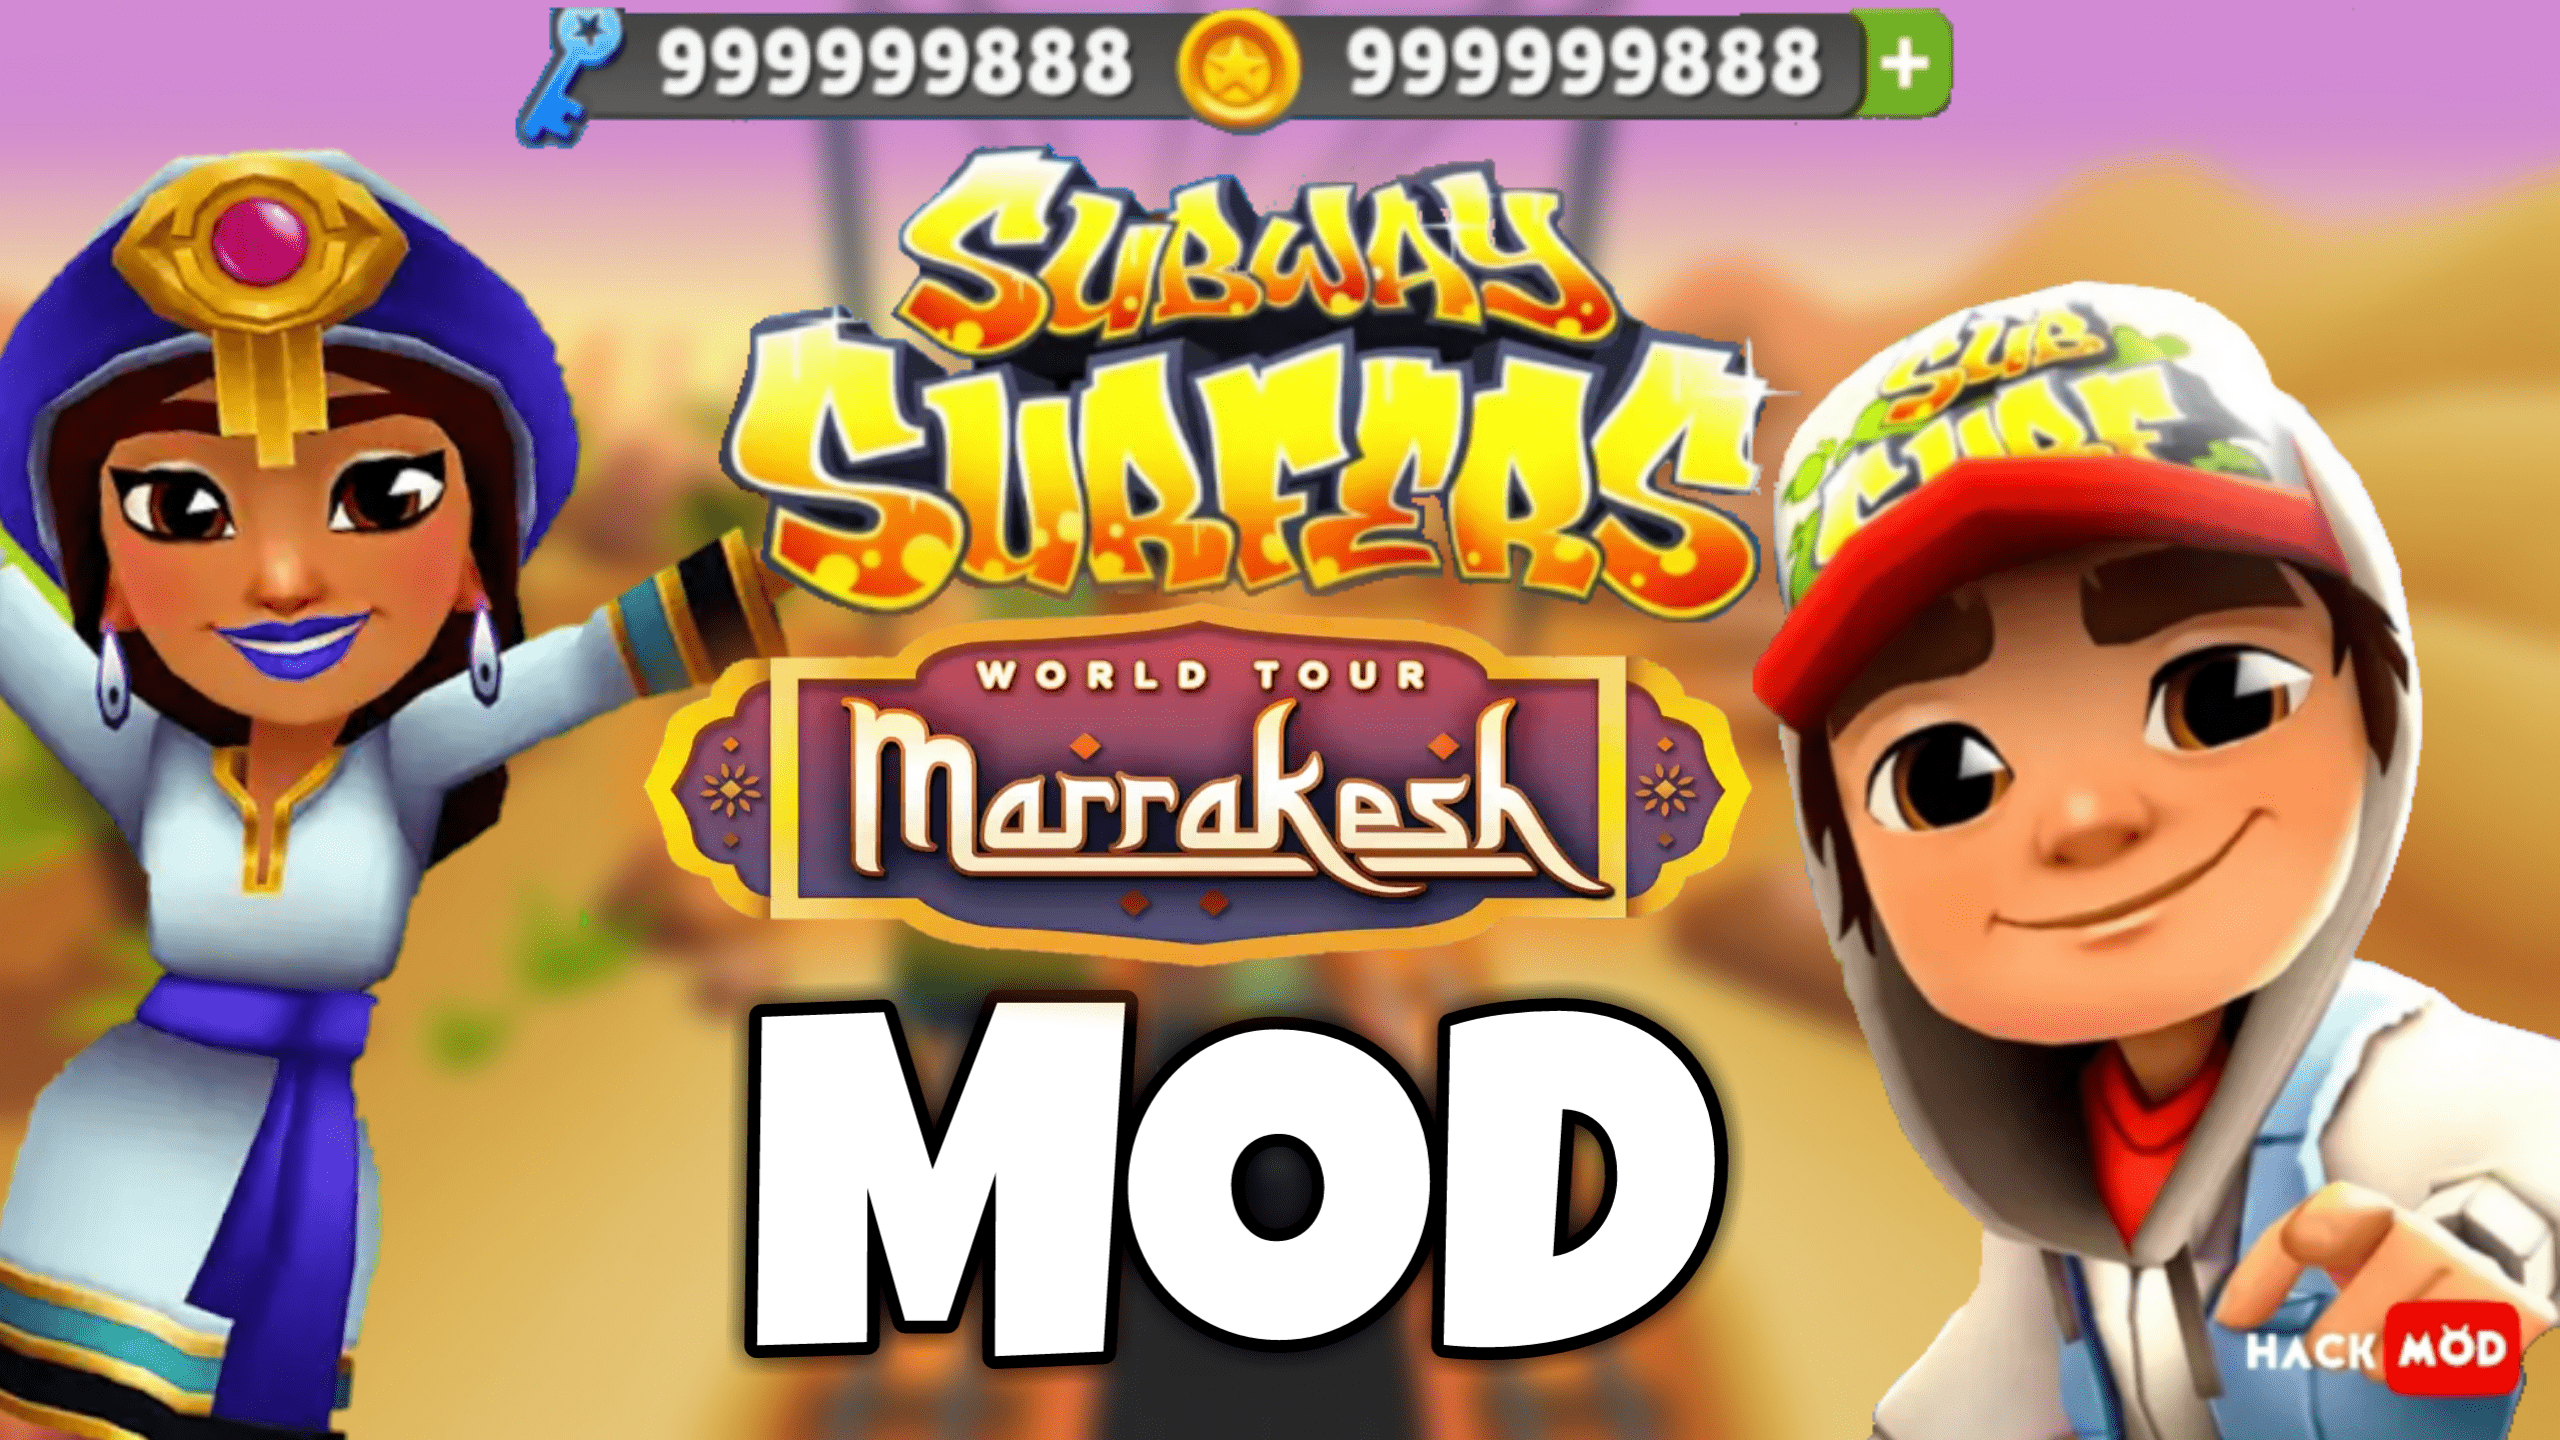 subway surfers mod apk download old version